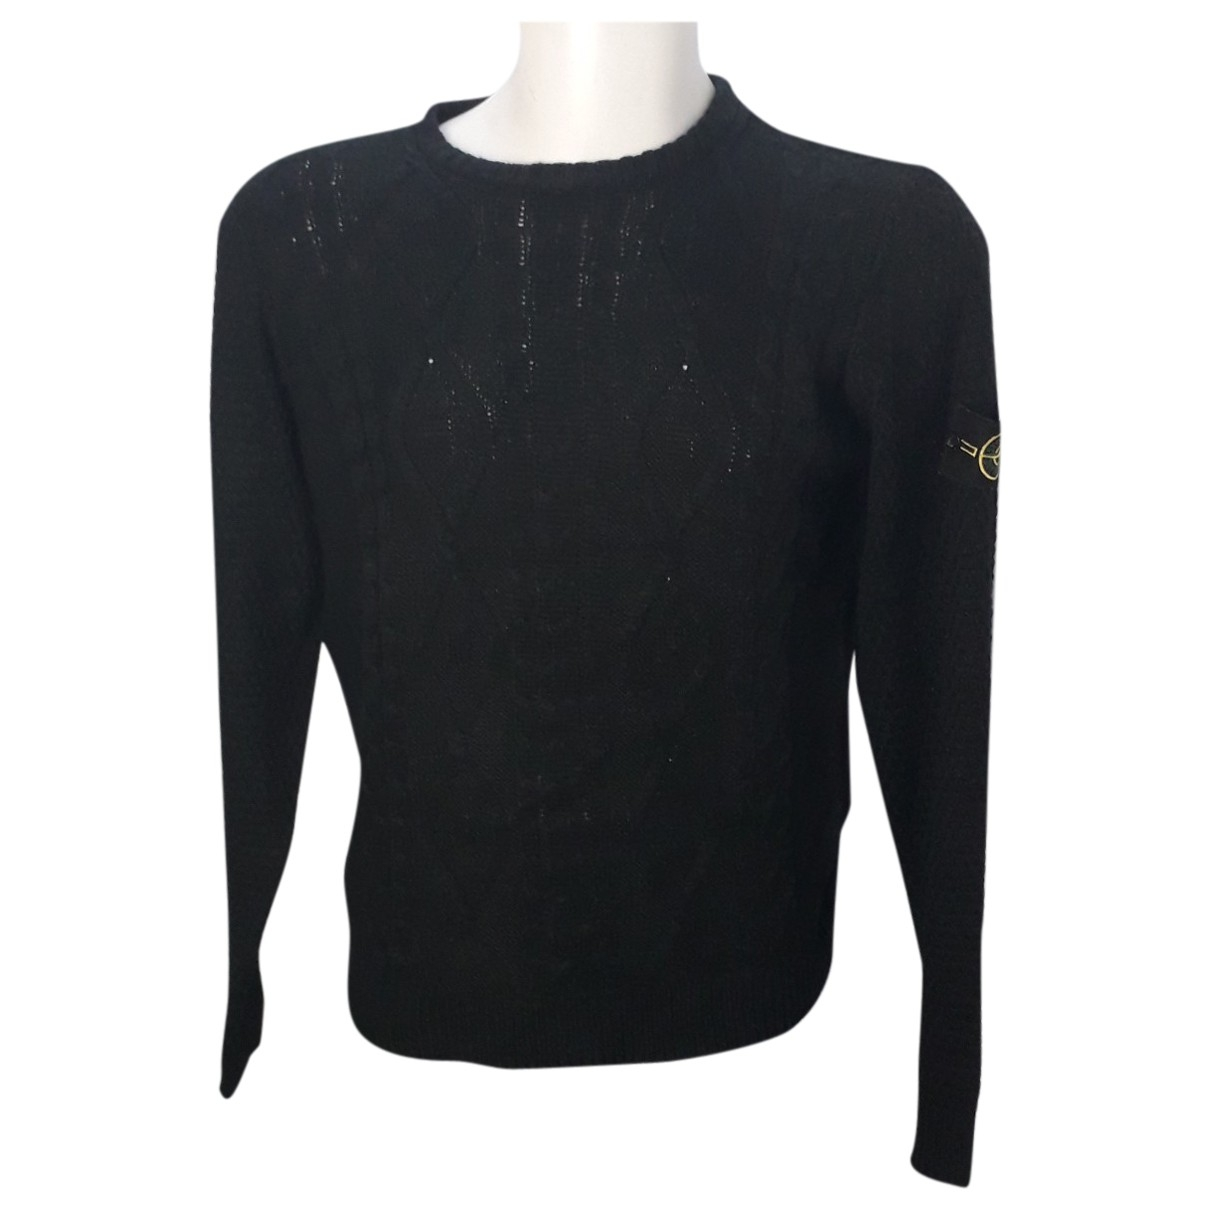 Stone Island \N Black Wool Knitwear & Sweatshirts for Men M International